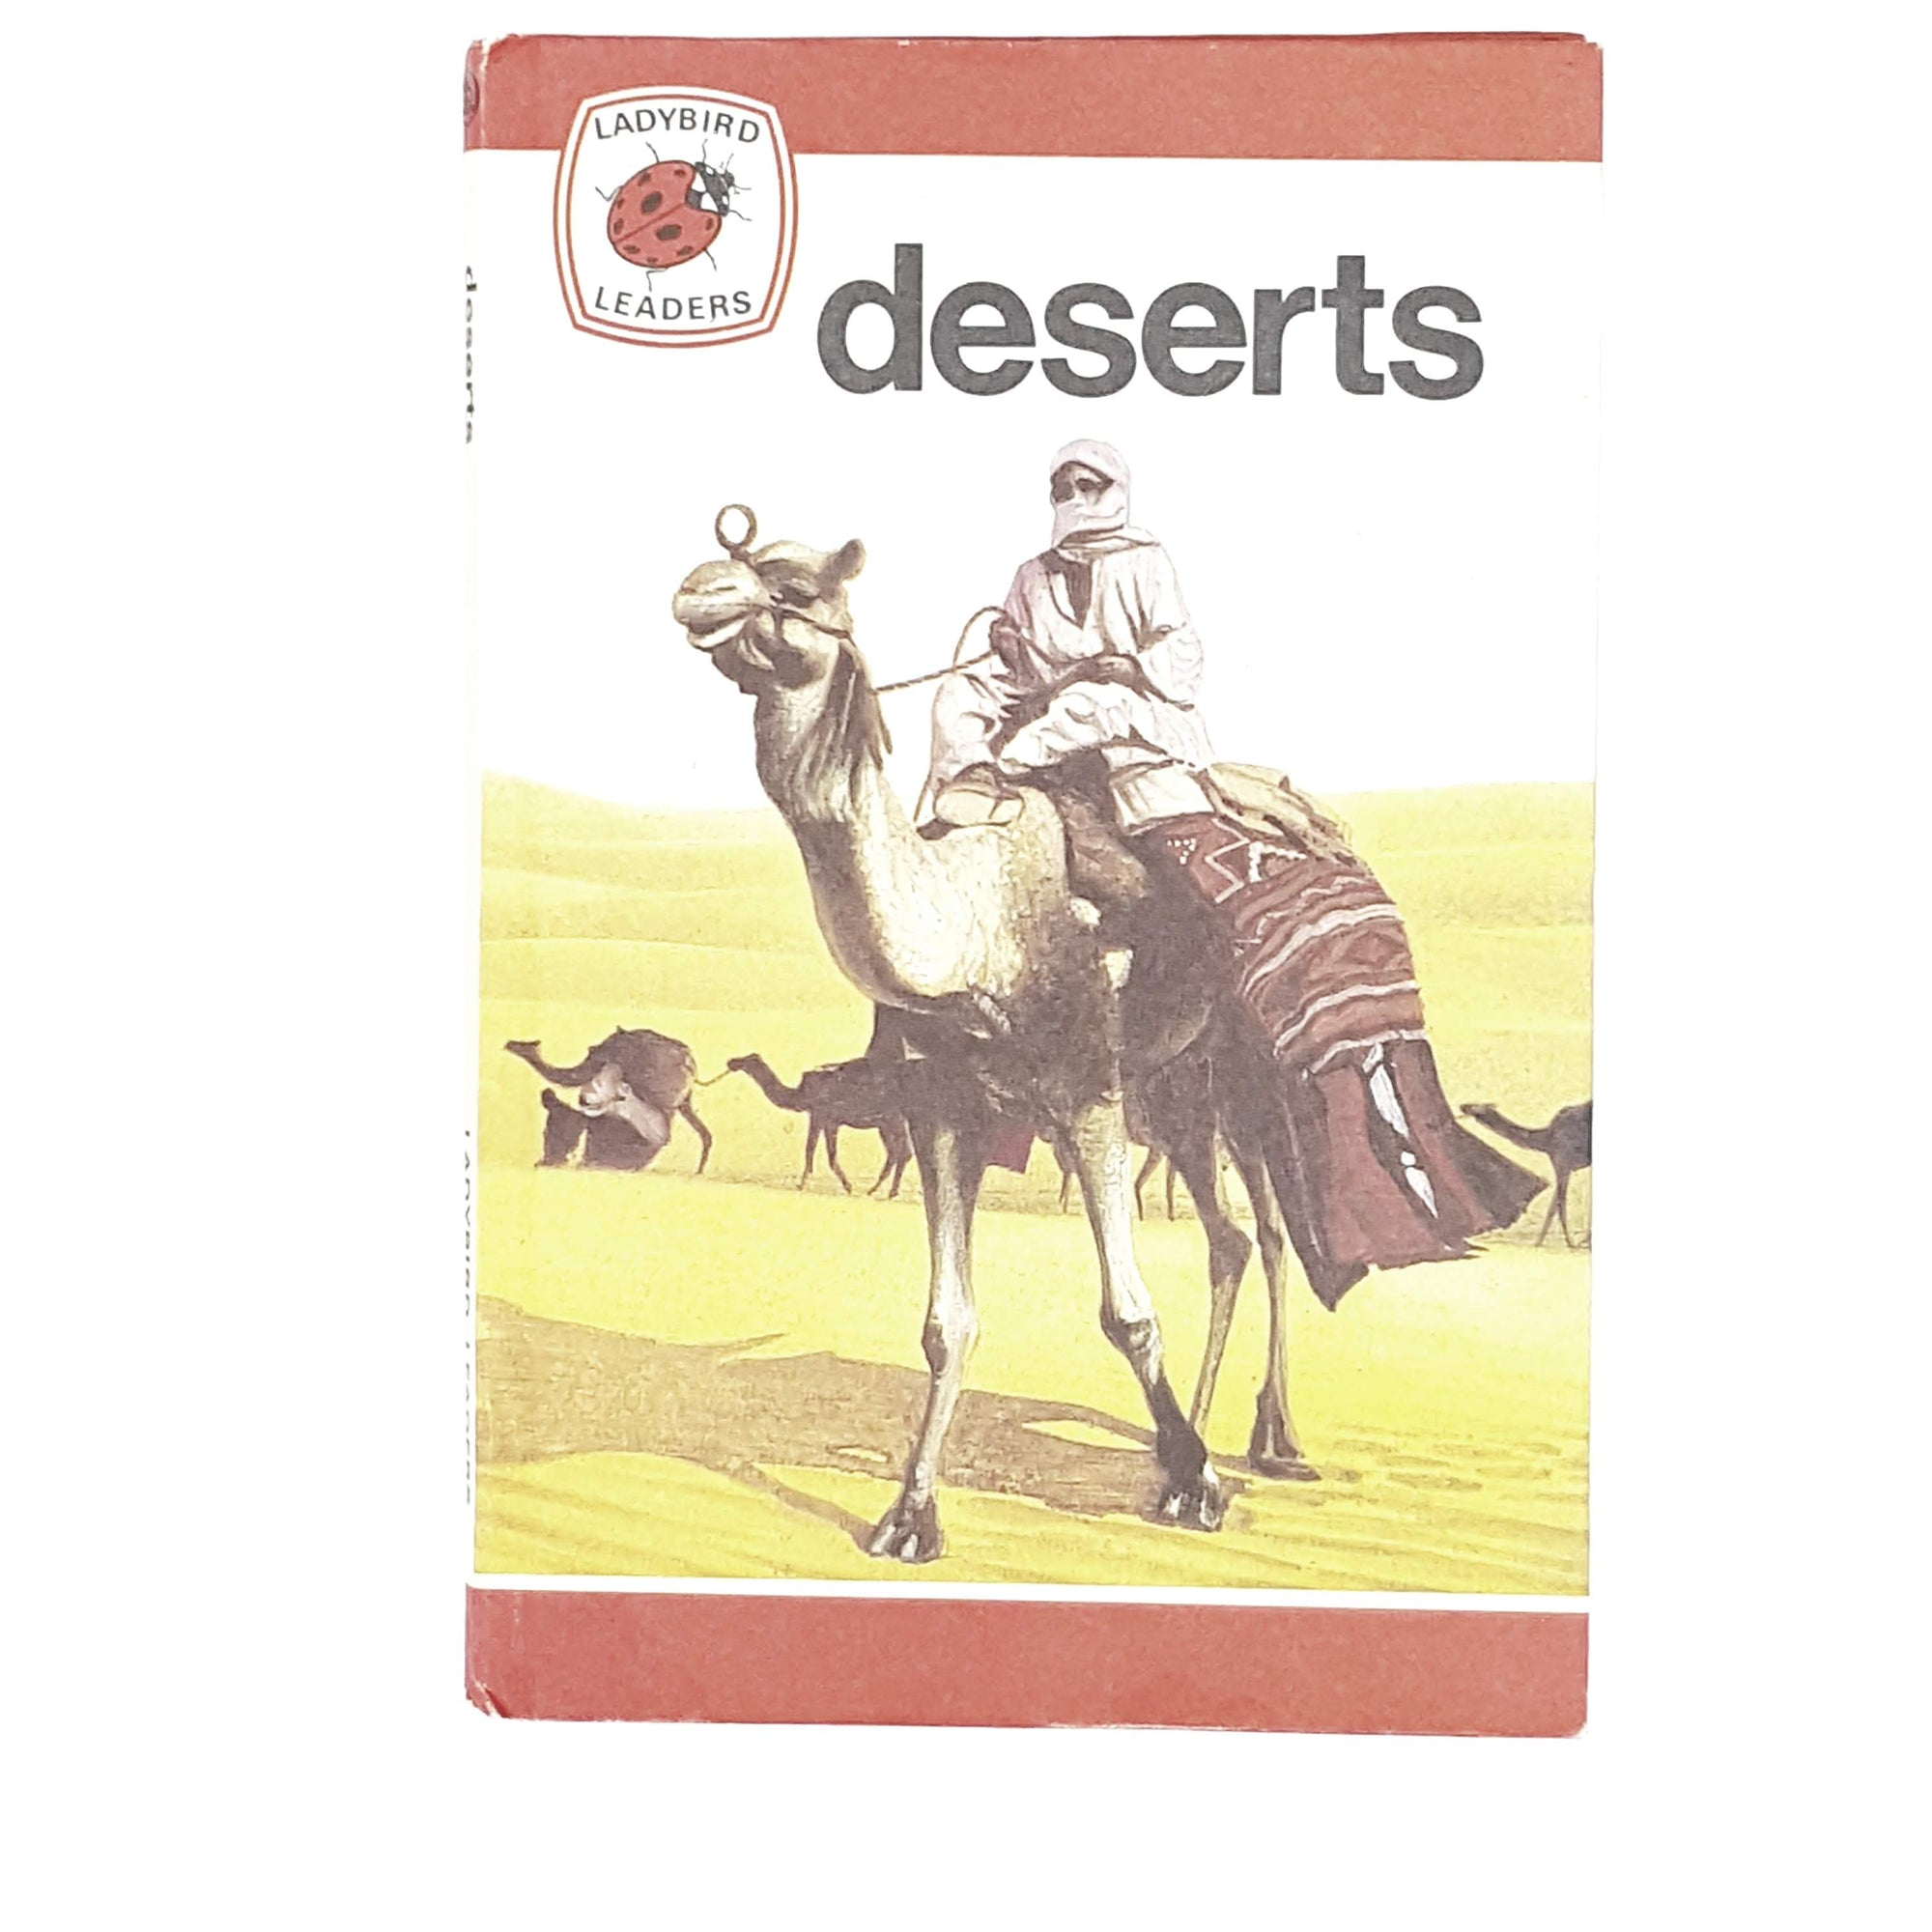 ladybird-leaders-deserts-1976-country-house-library